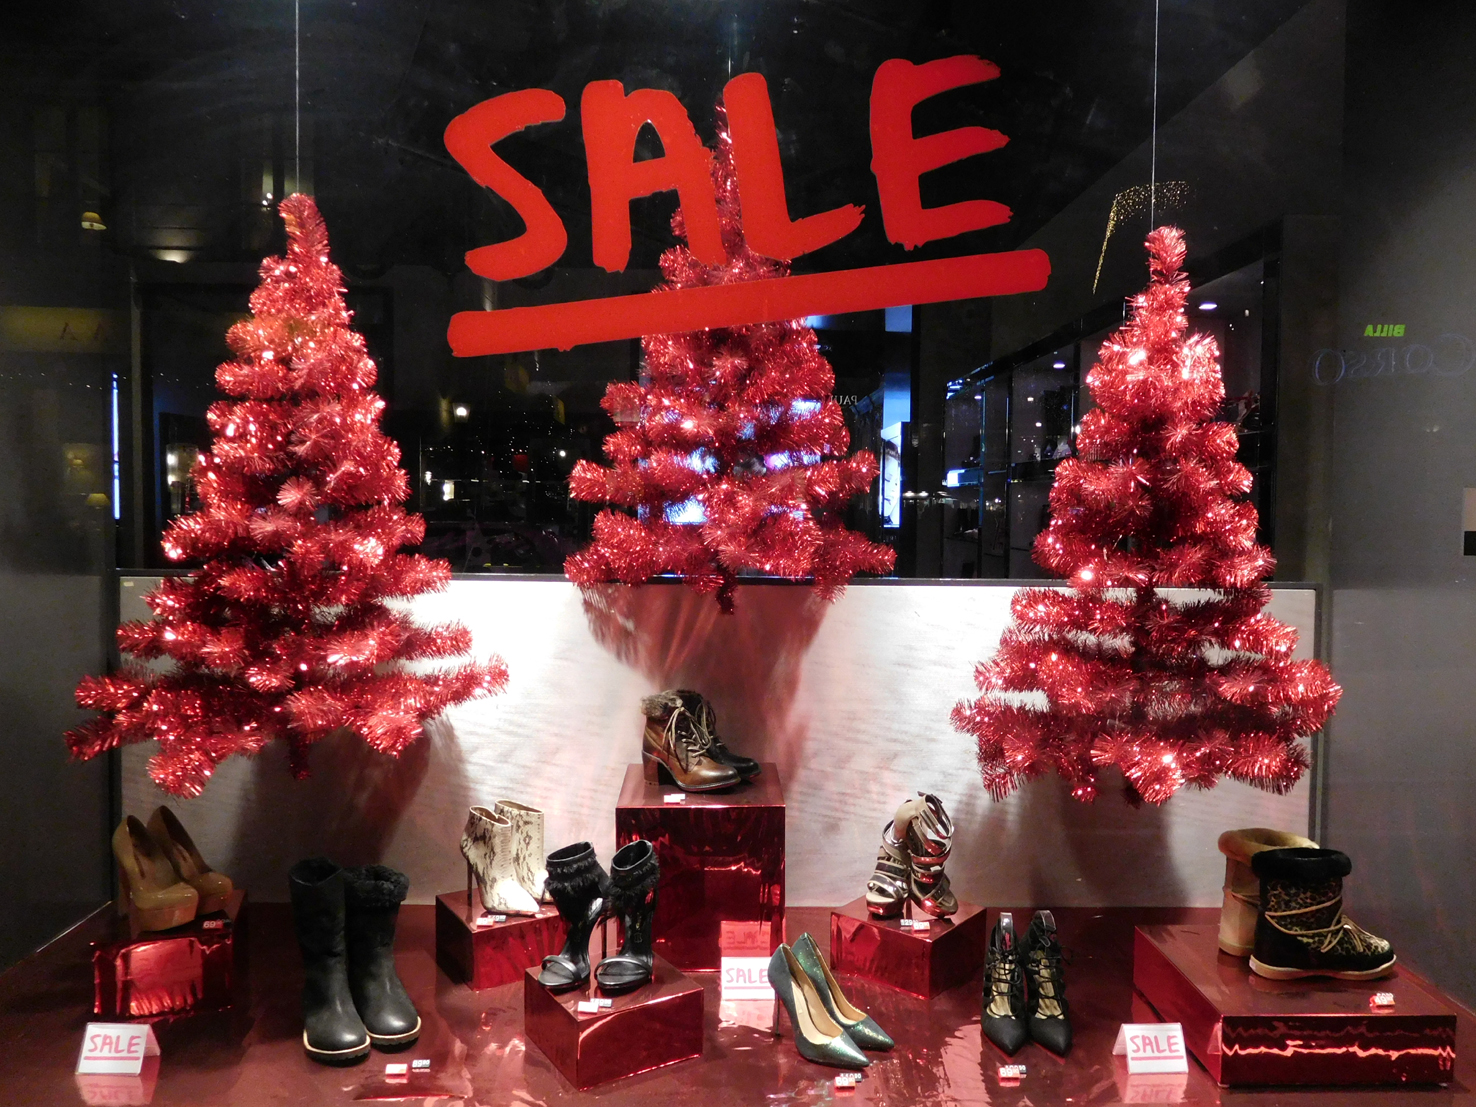 In Most Stores Christmas Sale Started On Monday. Based On My Own Experience  I Can Tell You That The Shopping Streets And Centers Were Crowded.